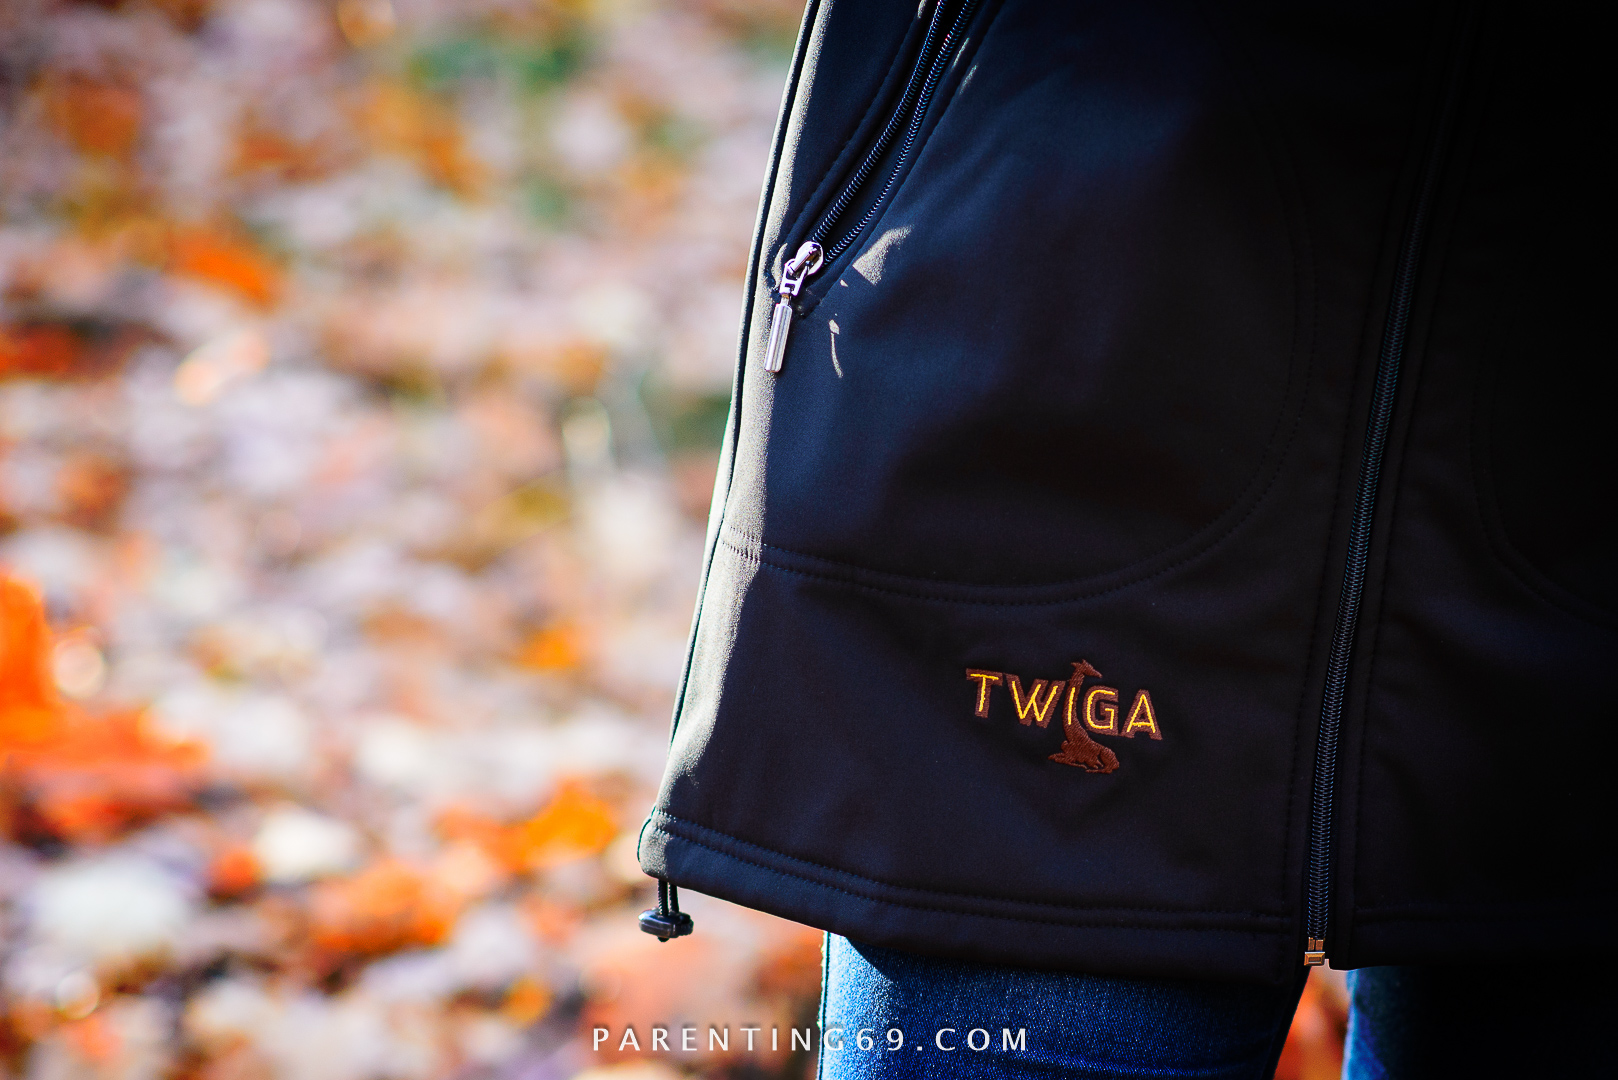 twiga-babywearing-clothing-for-two-black-twiga-babywearing-clothing-for-two-black-DSC_3665